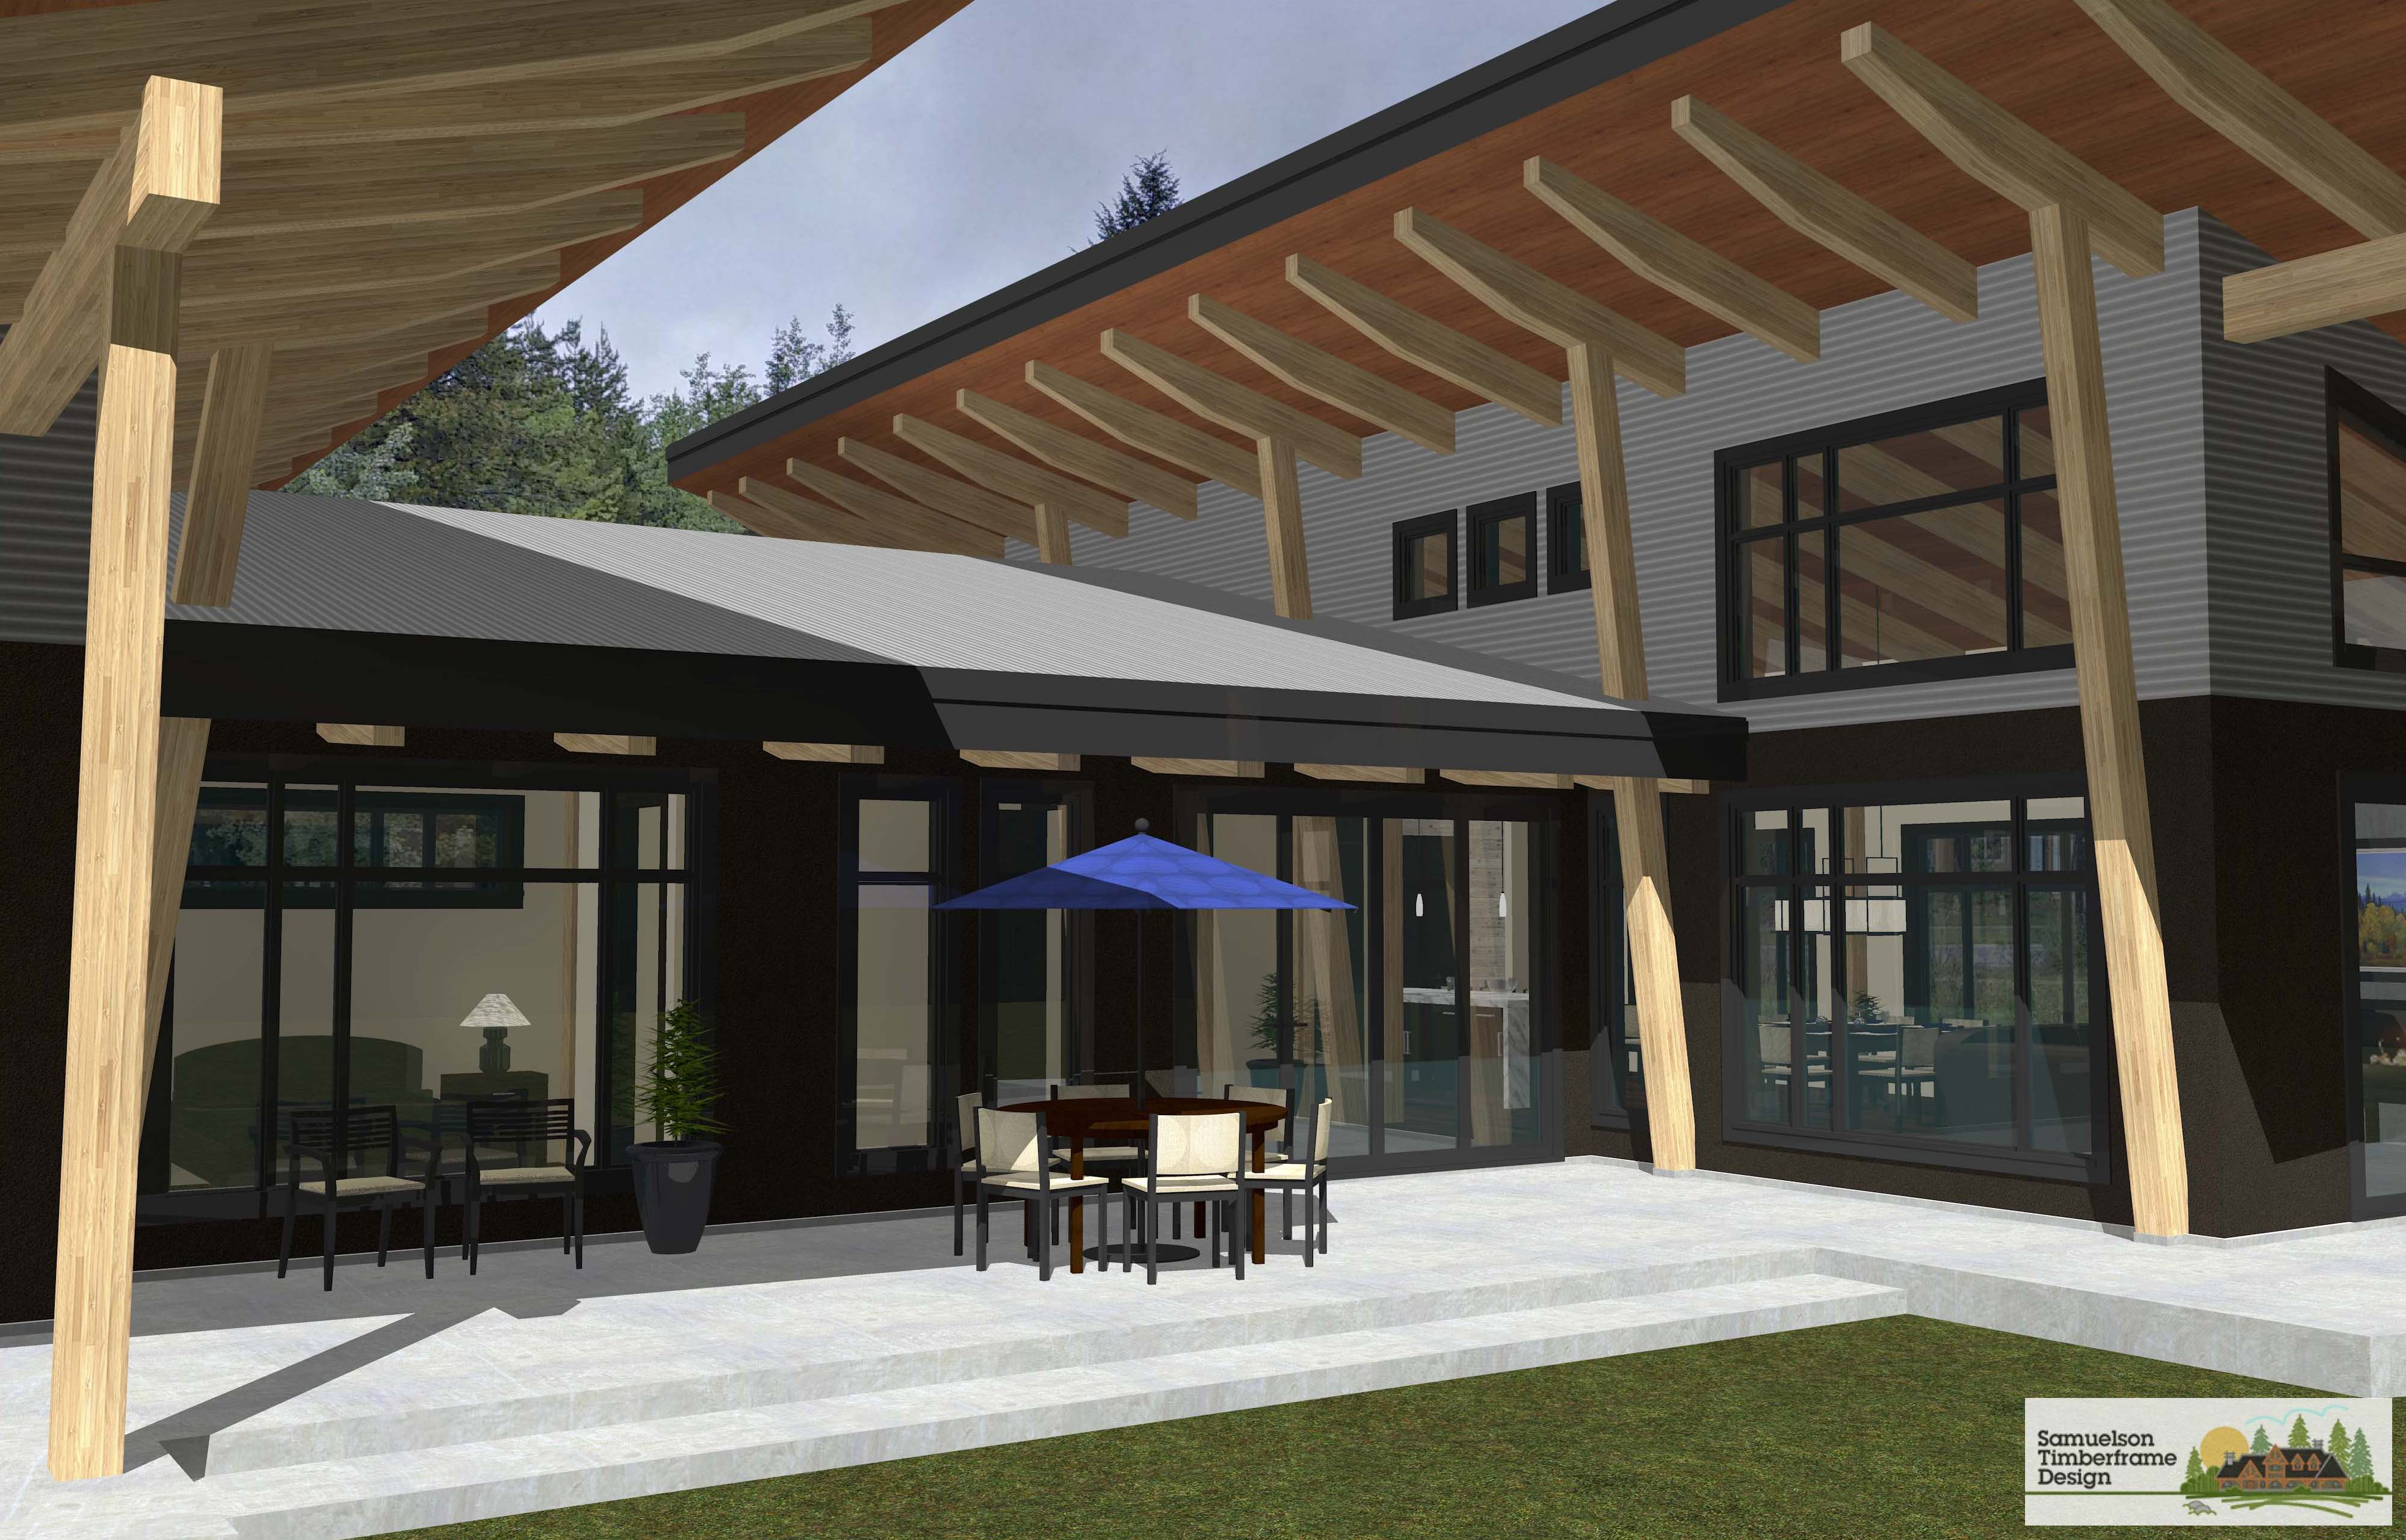 Samuelson Timberframe Design - West Coast Contemporary Timberframe Mountain Modern